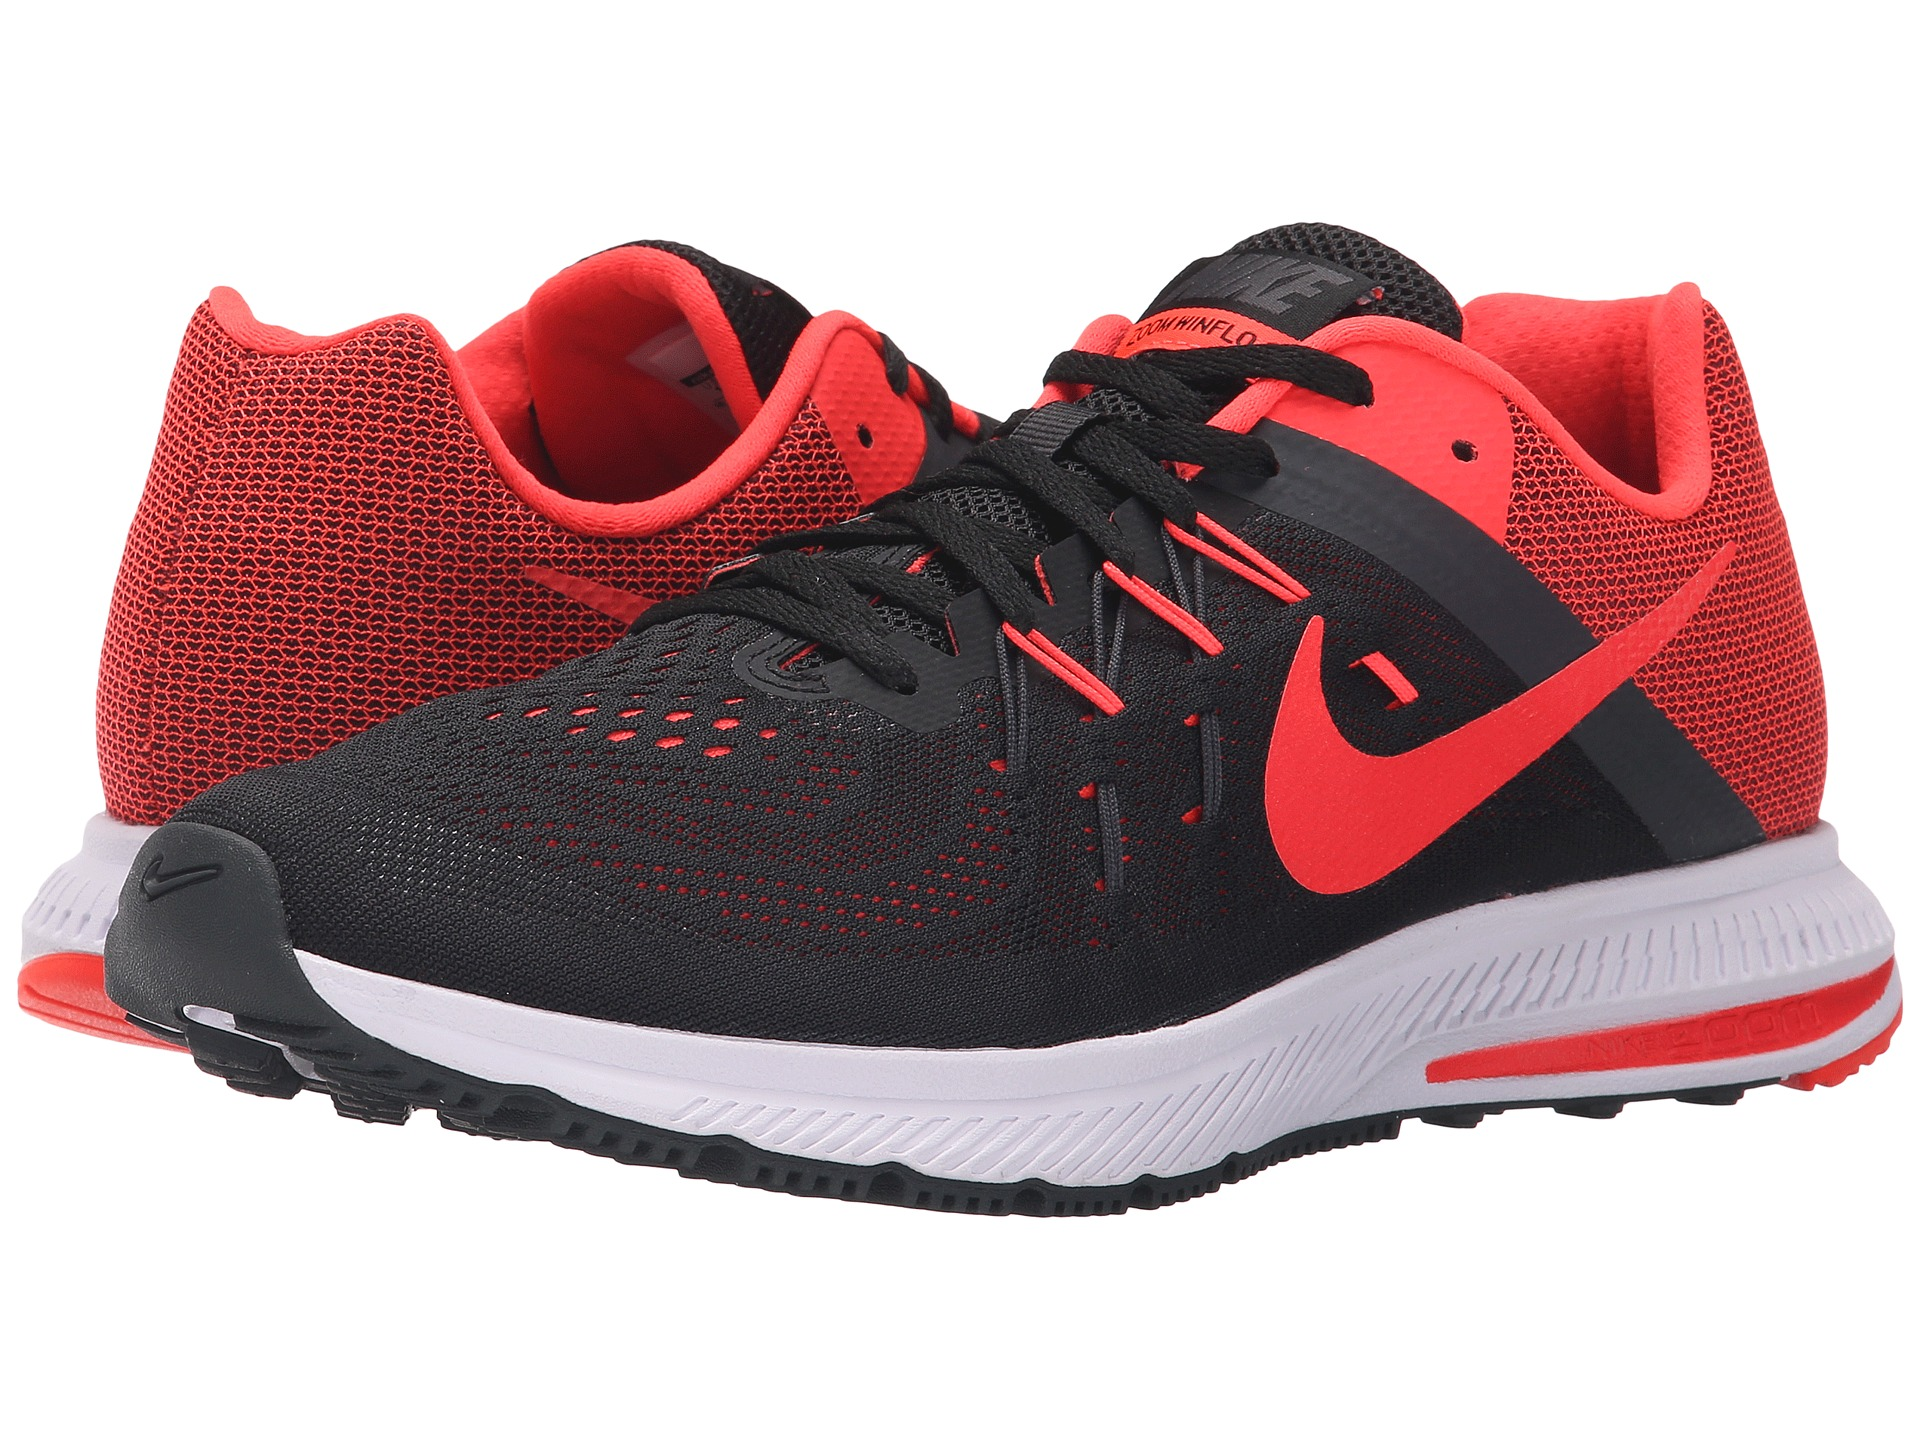 Nike Zoom Winflo 2 at 6pm.com